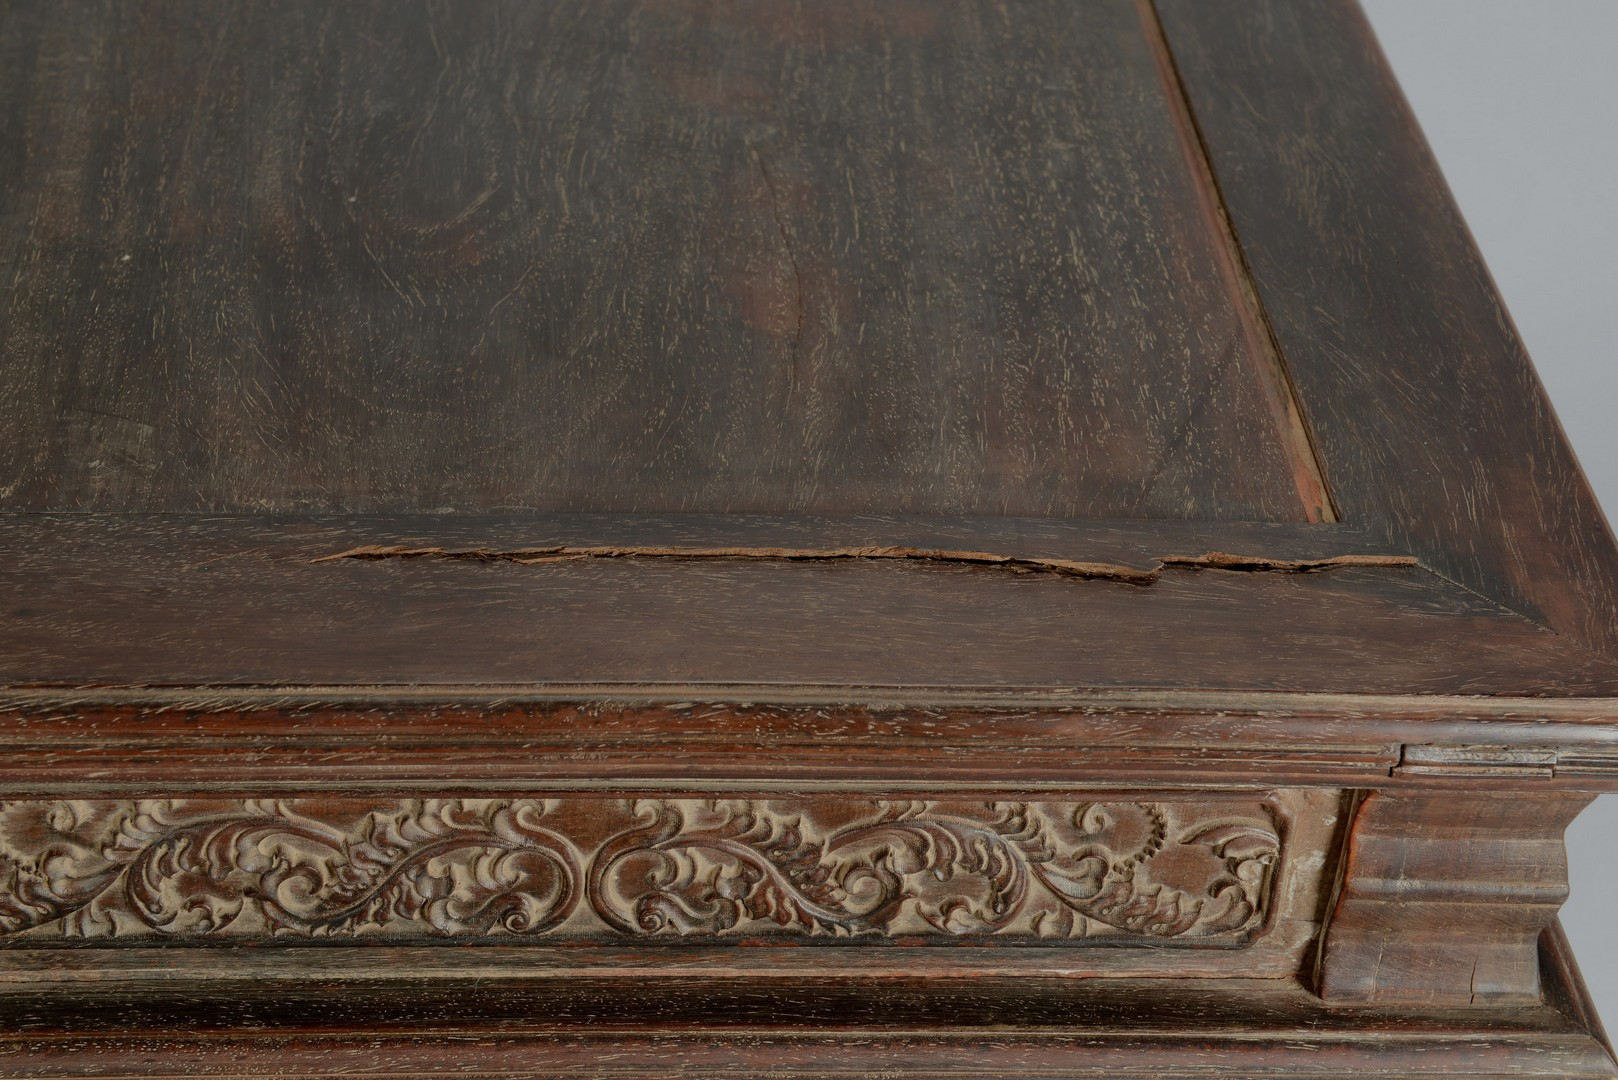 Lot 3383158: Chinese Carved Hardwood Side Table